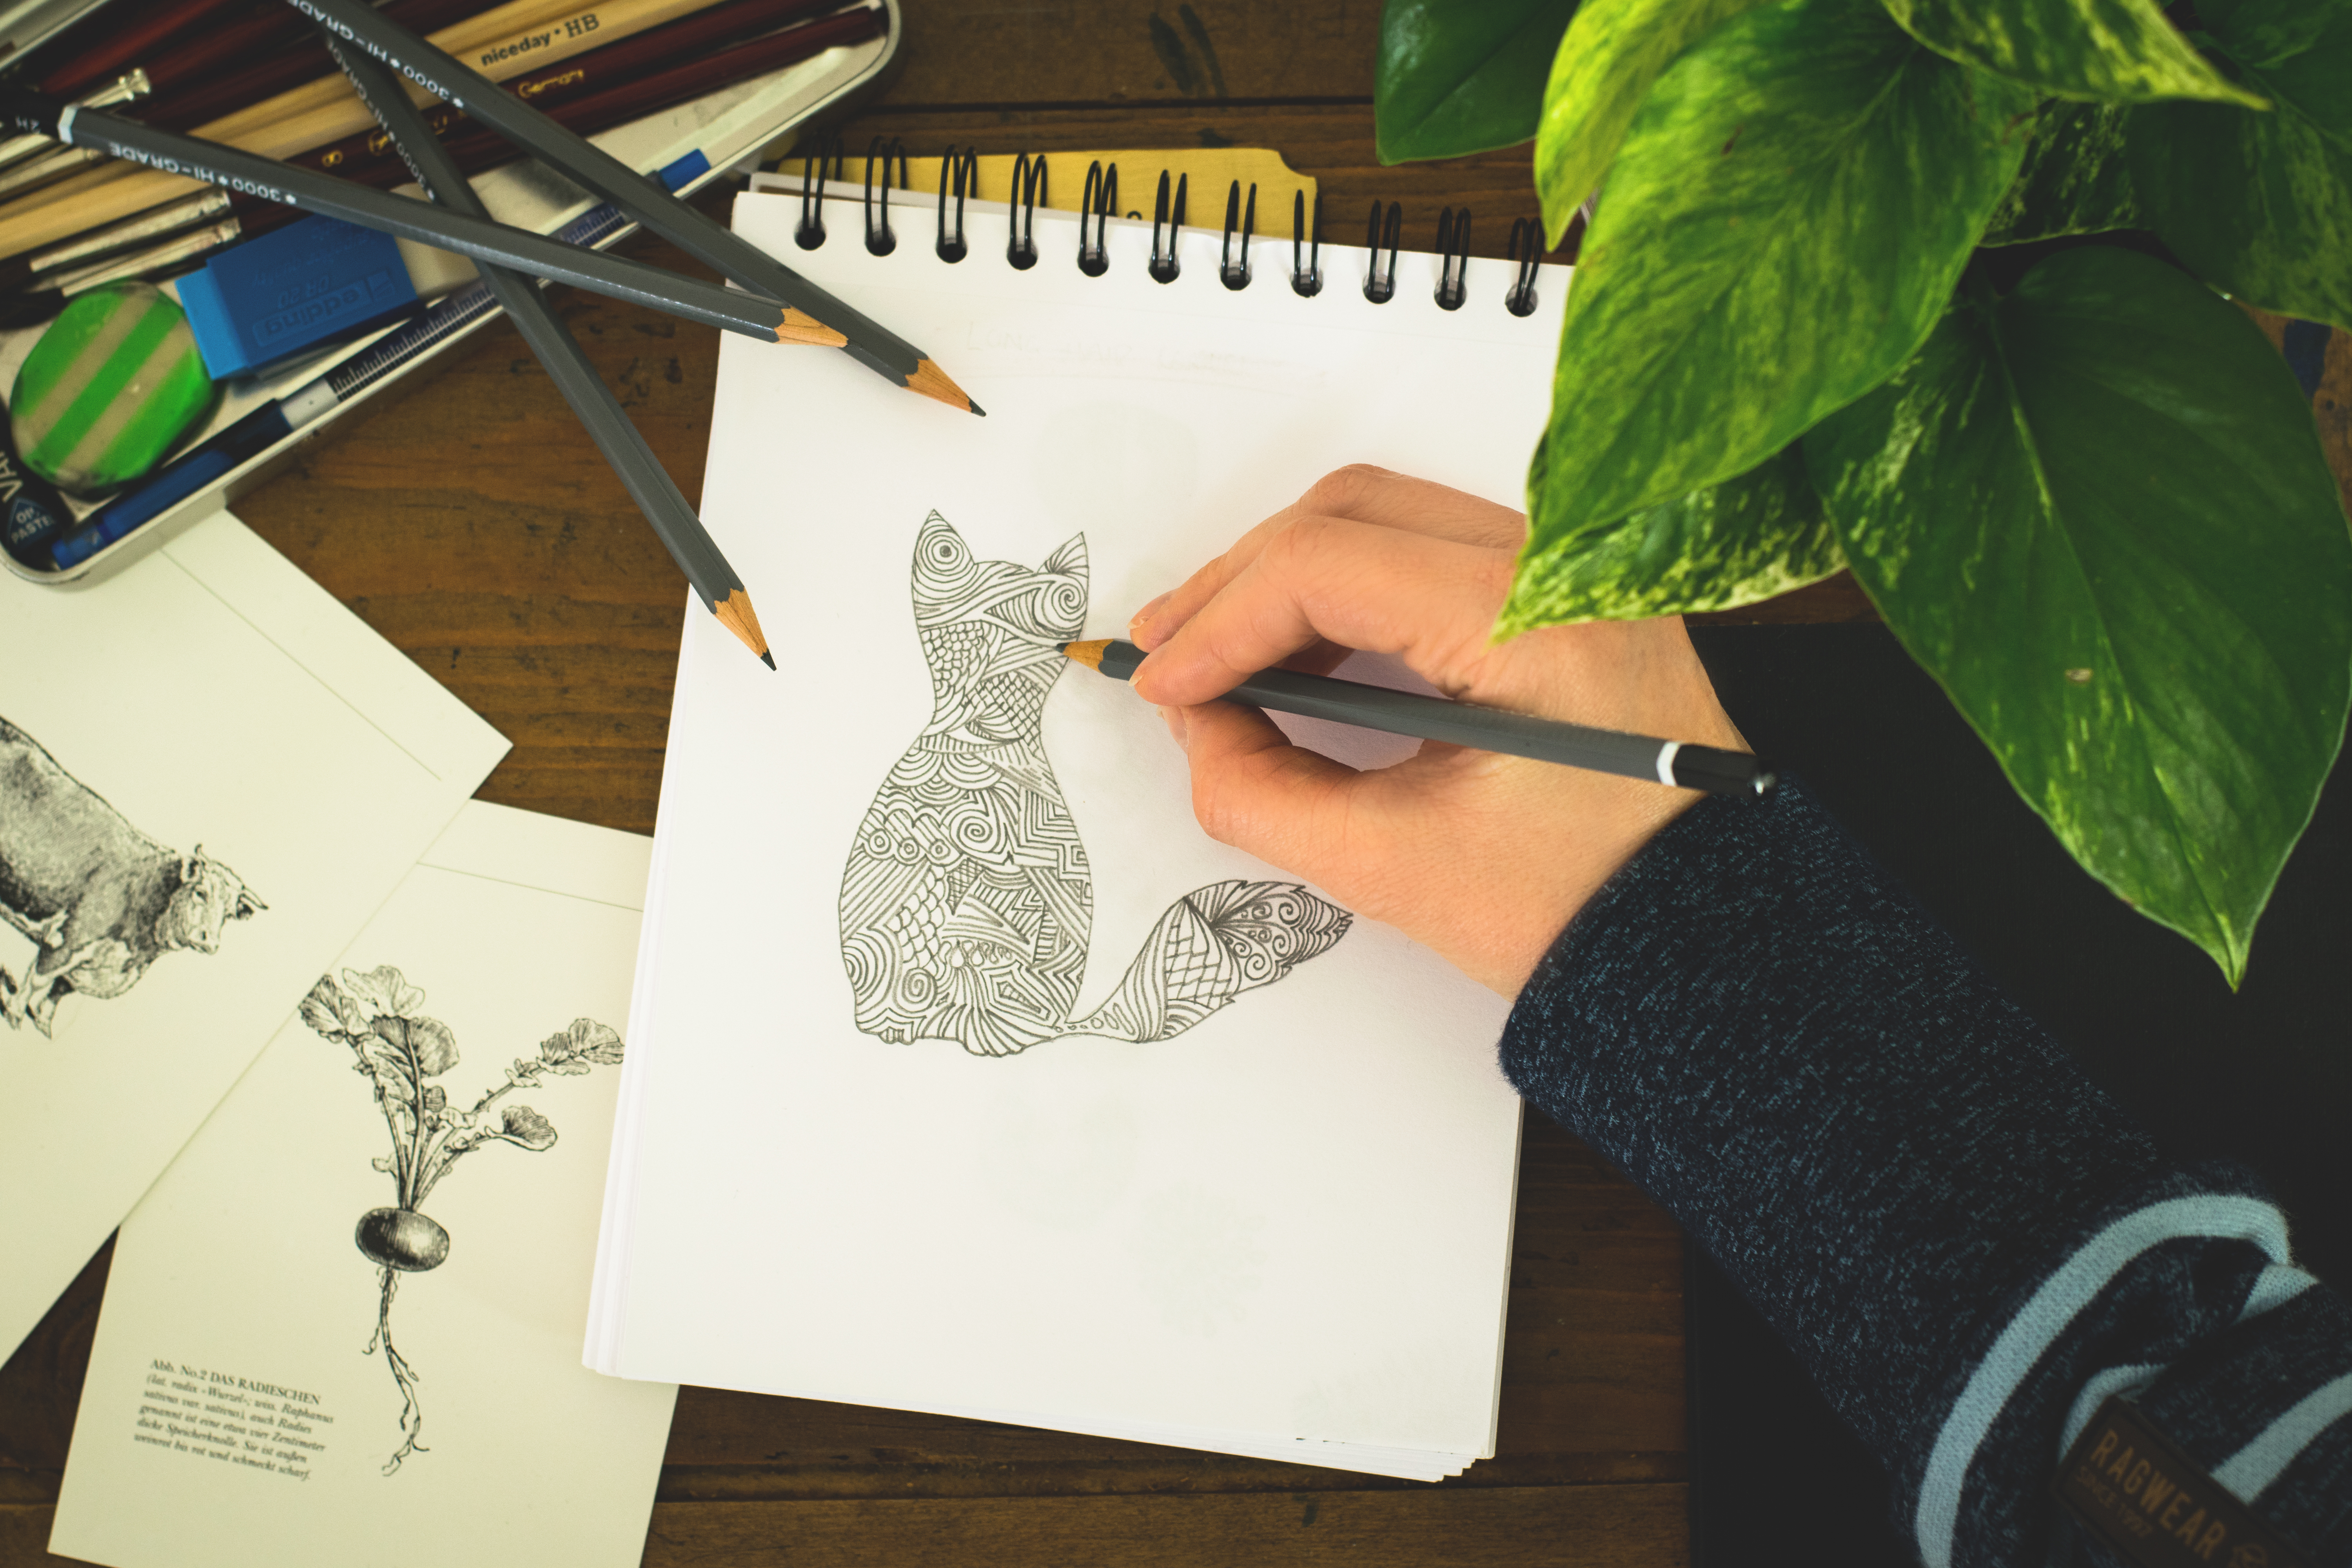 Uncategorized Picture Of Drawing free stock photos of drawing pexels photo art hand writing pencil